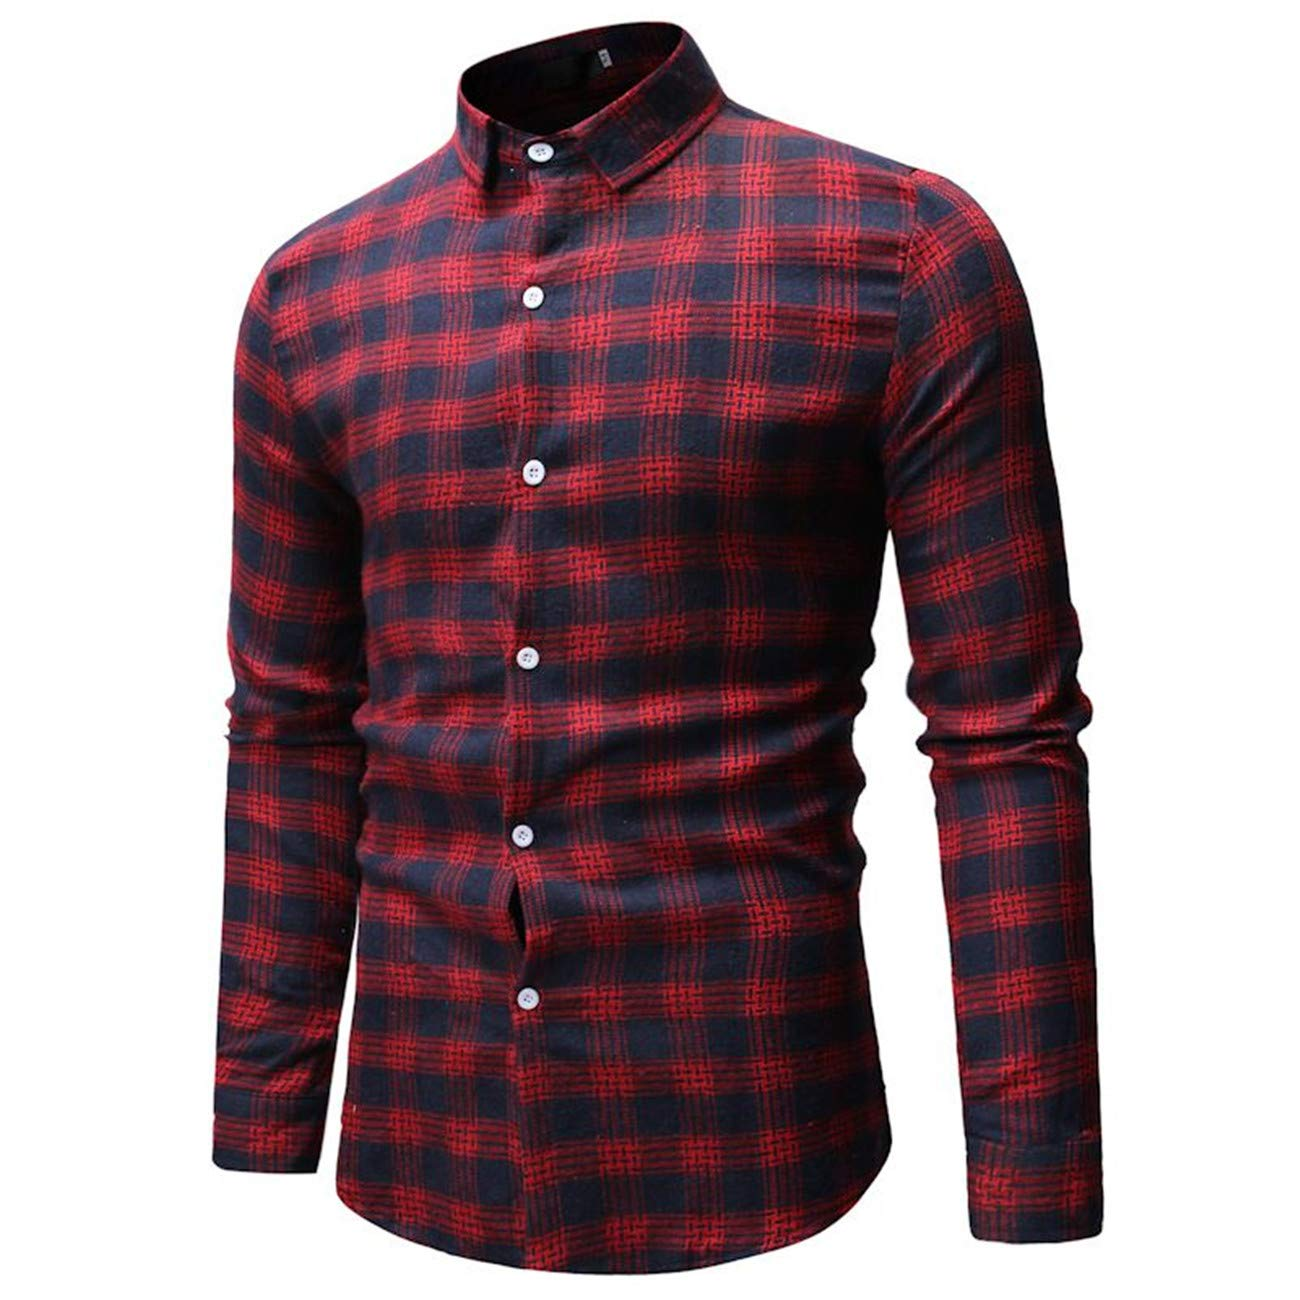 Mens Long-Sleeved Leisure and Fashion3 Color Button Down Checked Shirt